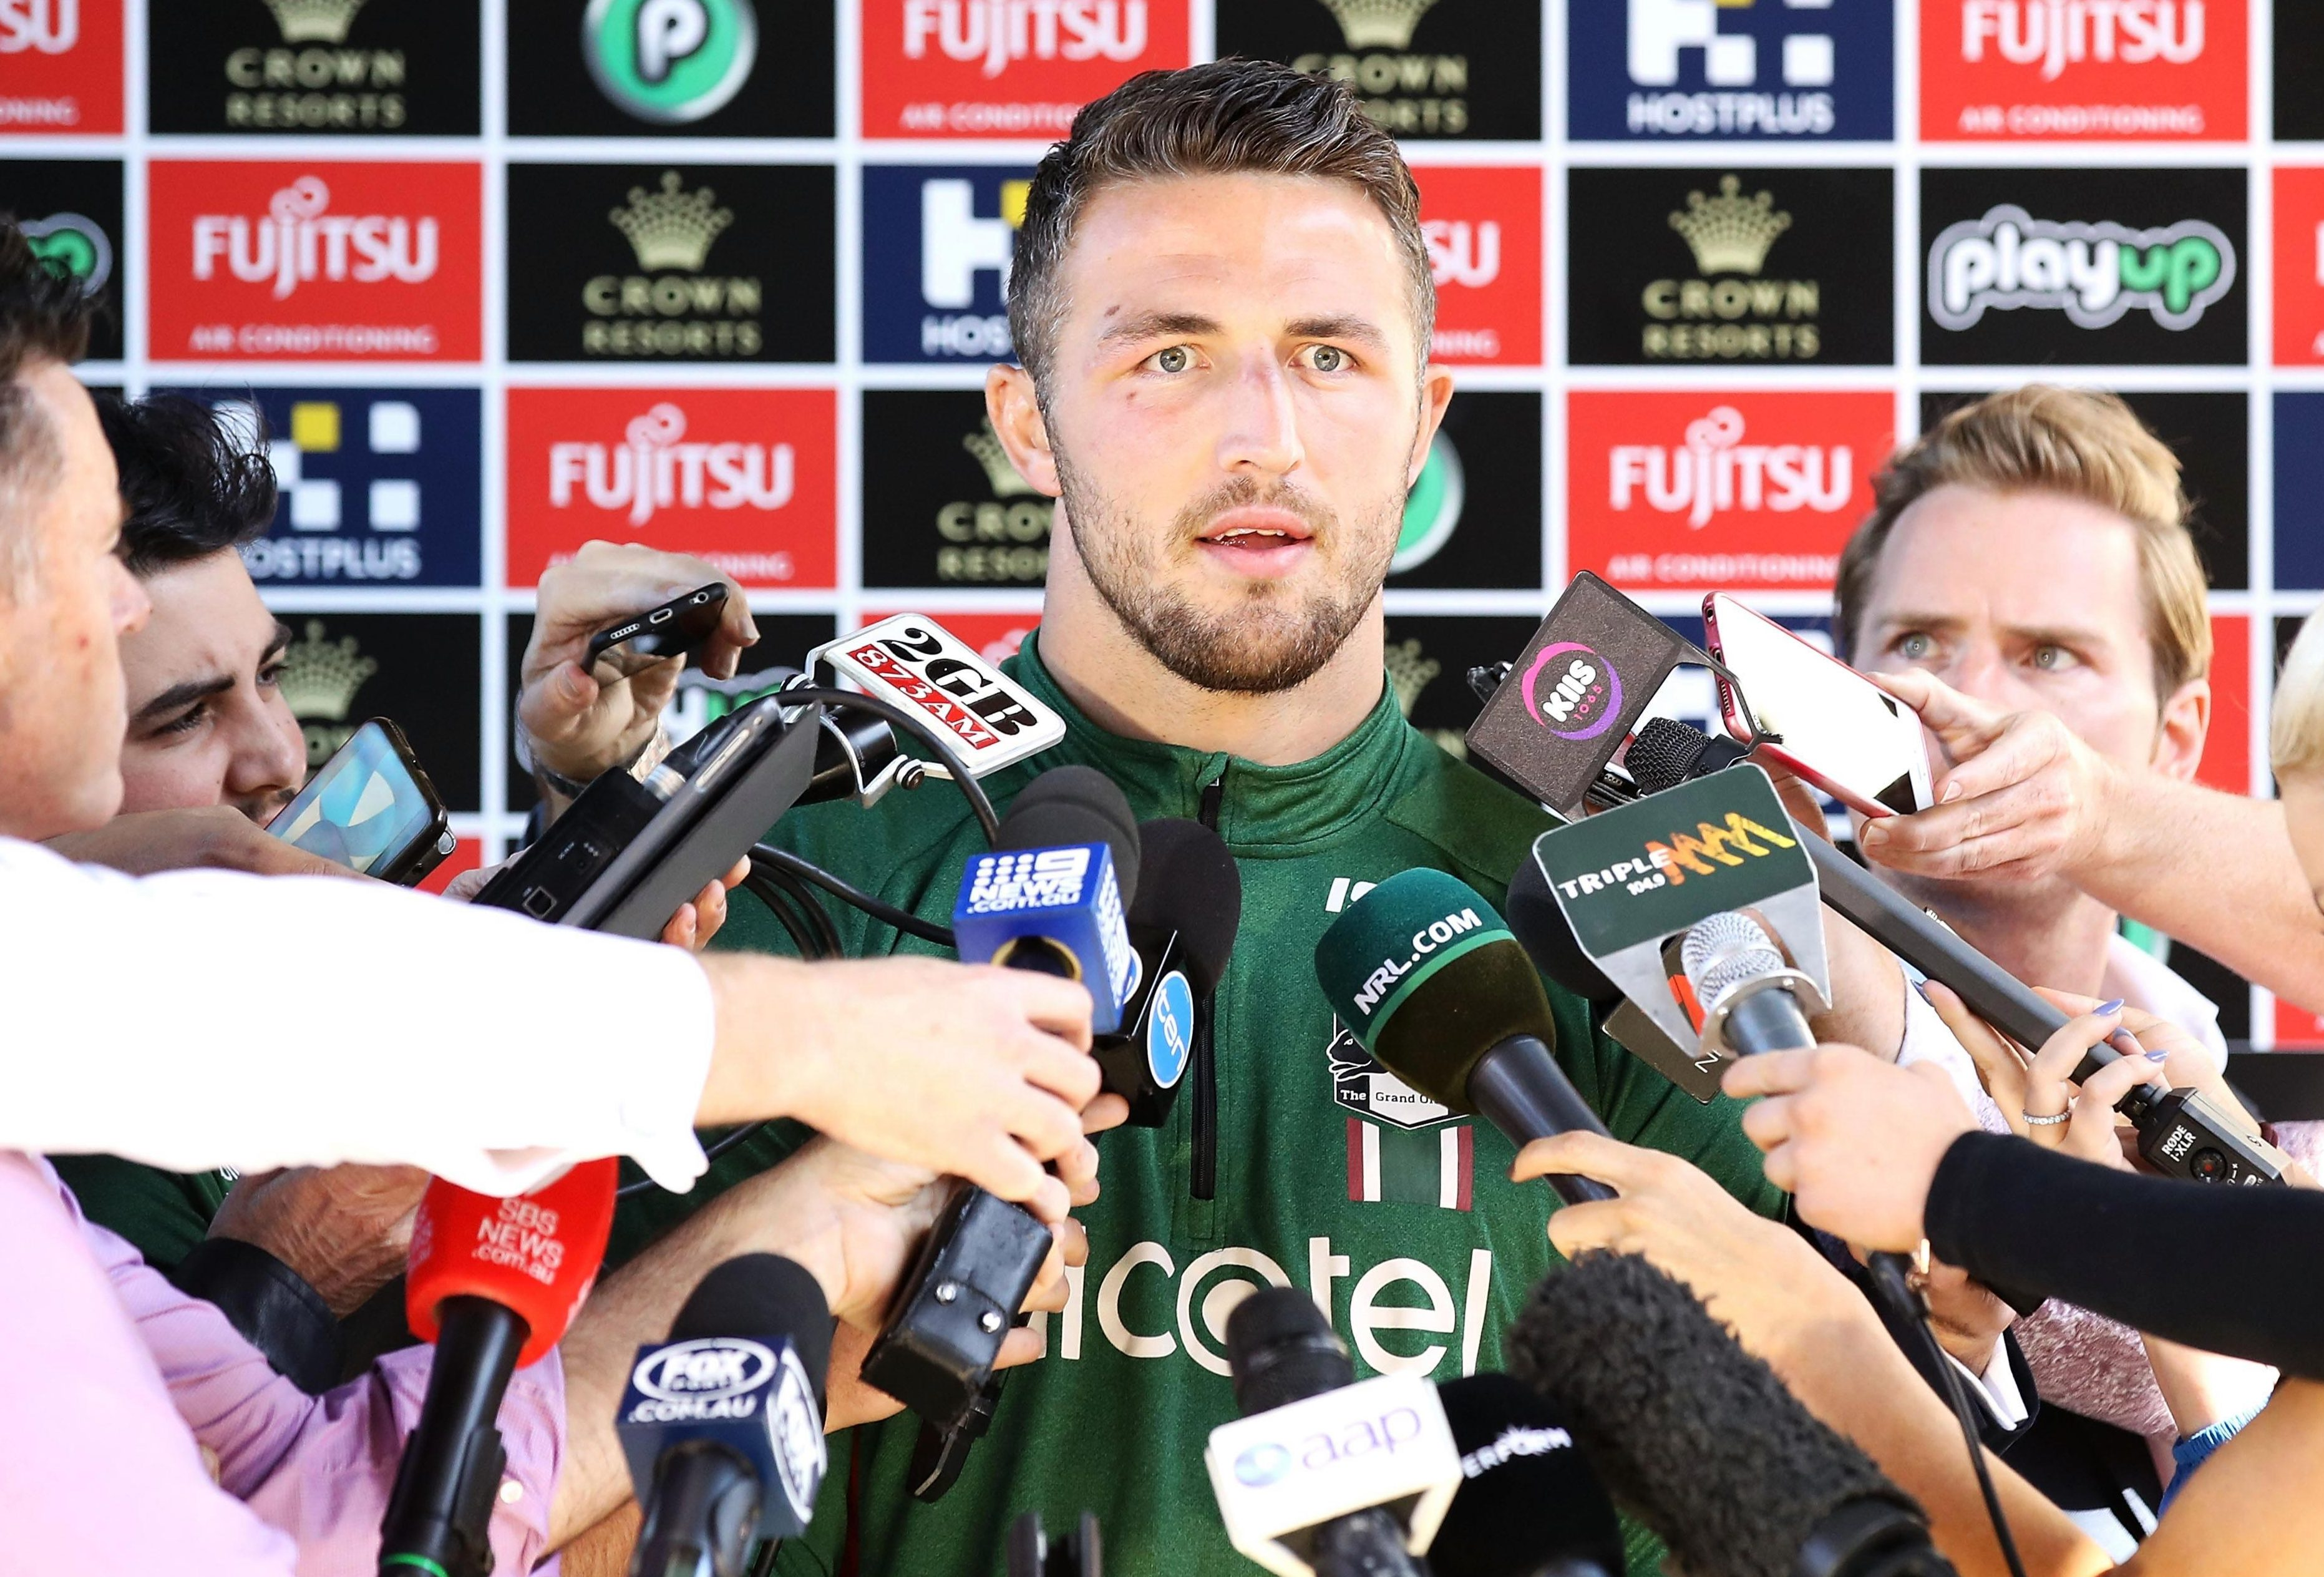 Sam Burgess spoke to the media after the NRL launched a probe into accusations his social media account was used to send lewd messages